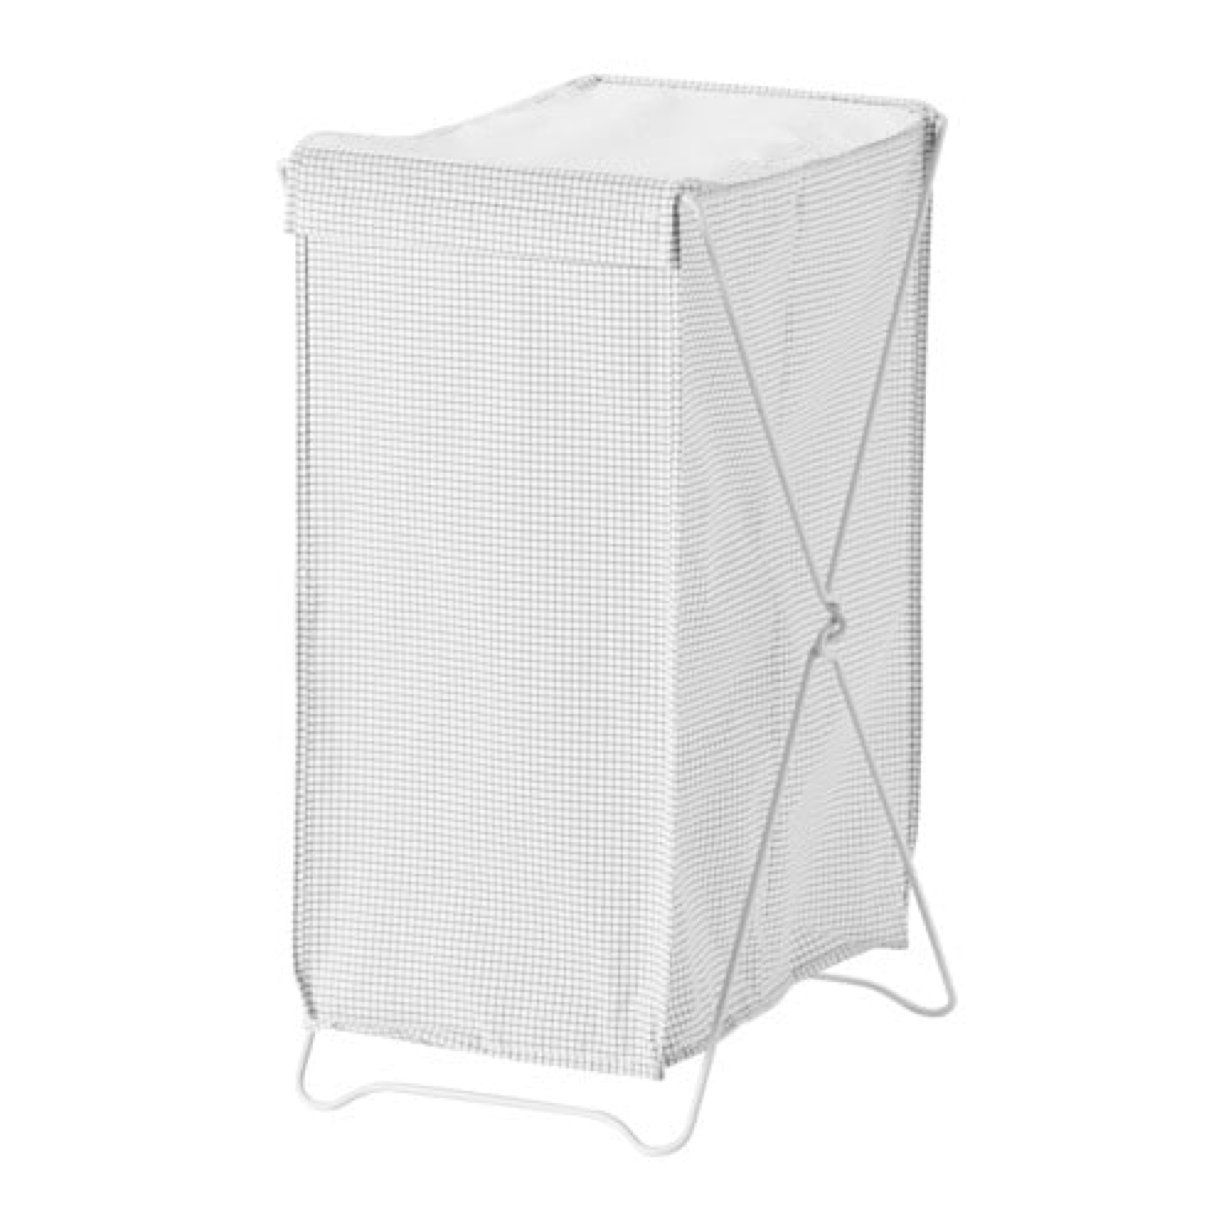 Torkis Laundry Basket—IKEA bedroom storage